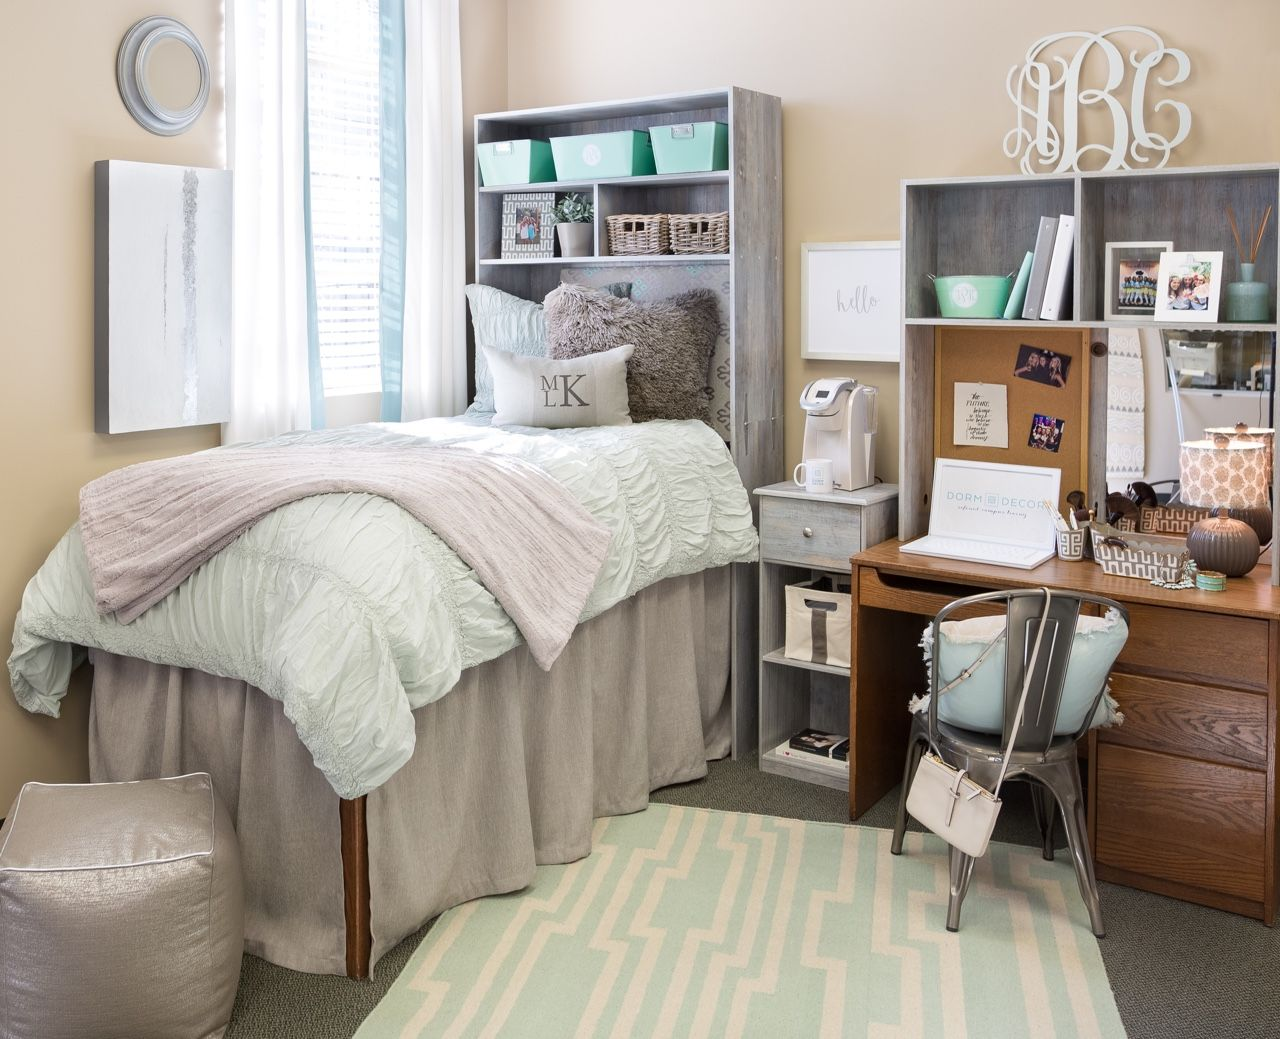 What You Actually Need For College Dorm Room